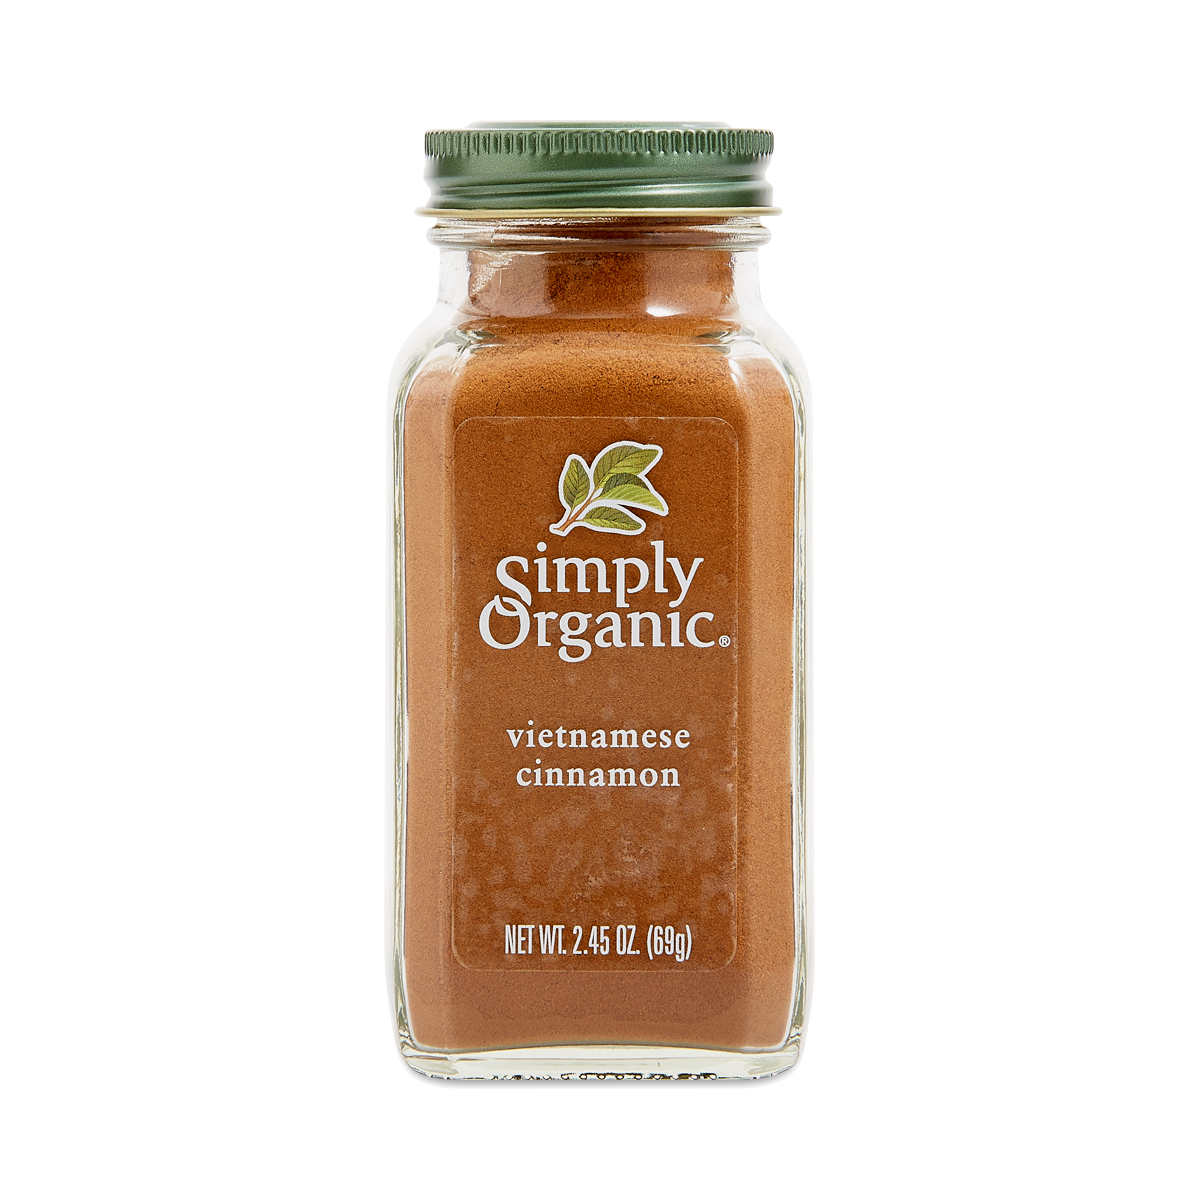 Simply Organic Vietnamese Ground Cinnamon 2.45 oz container